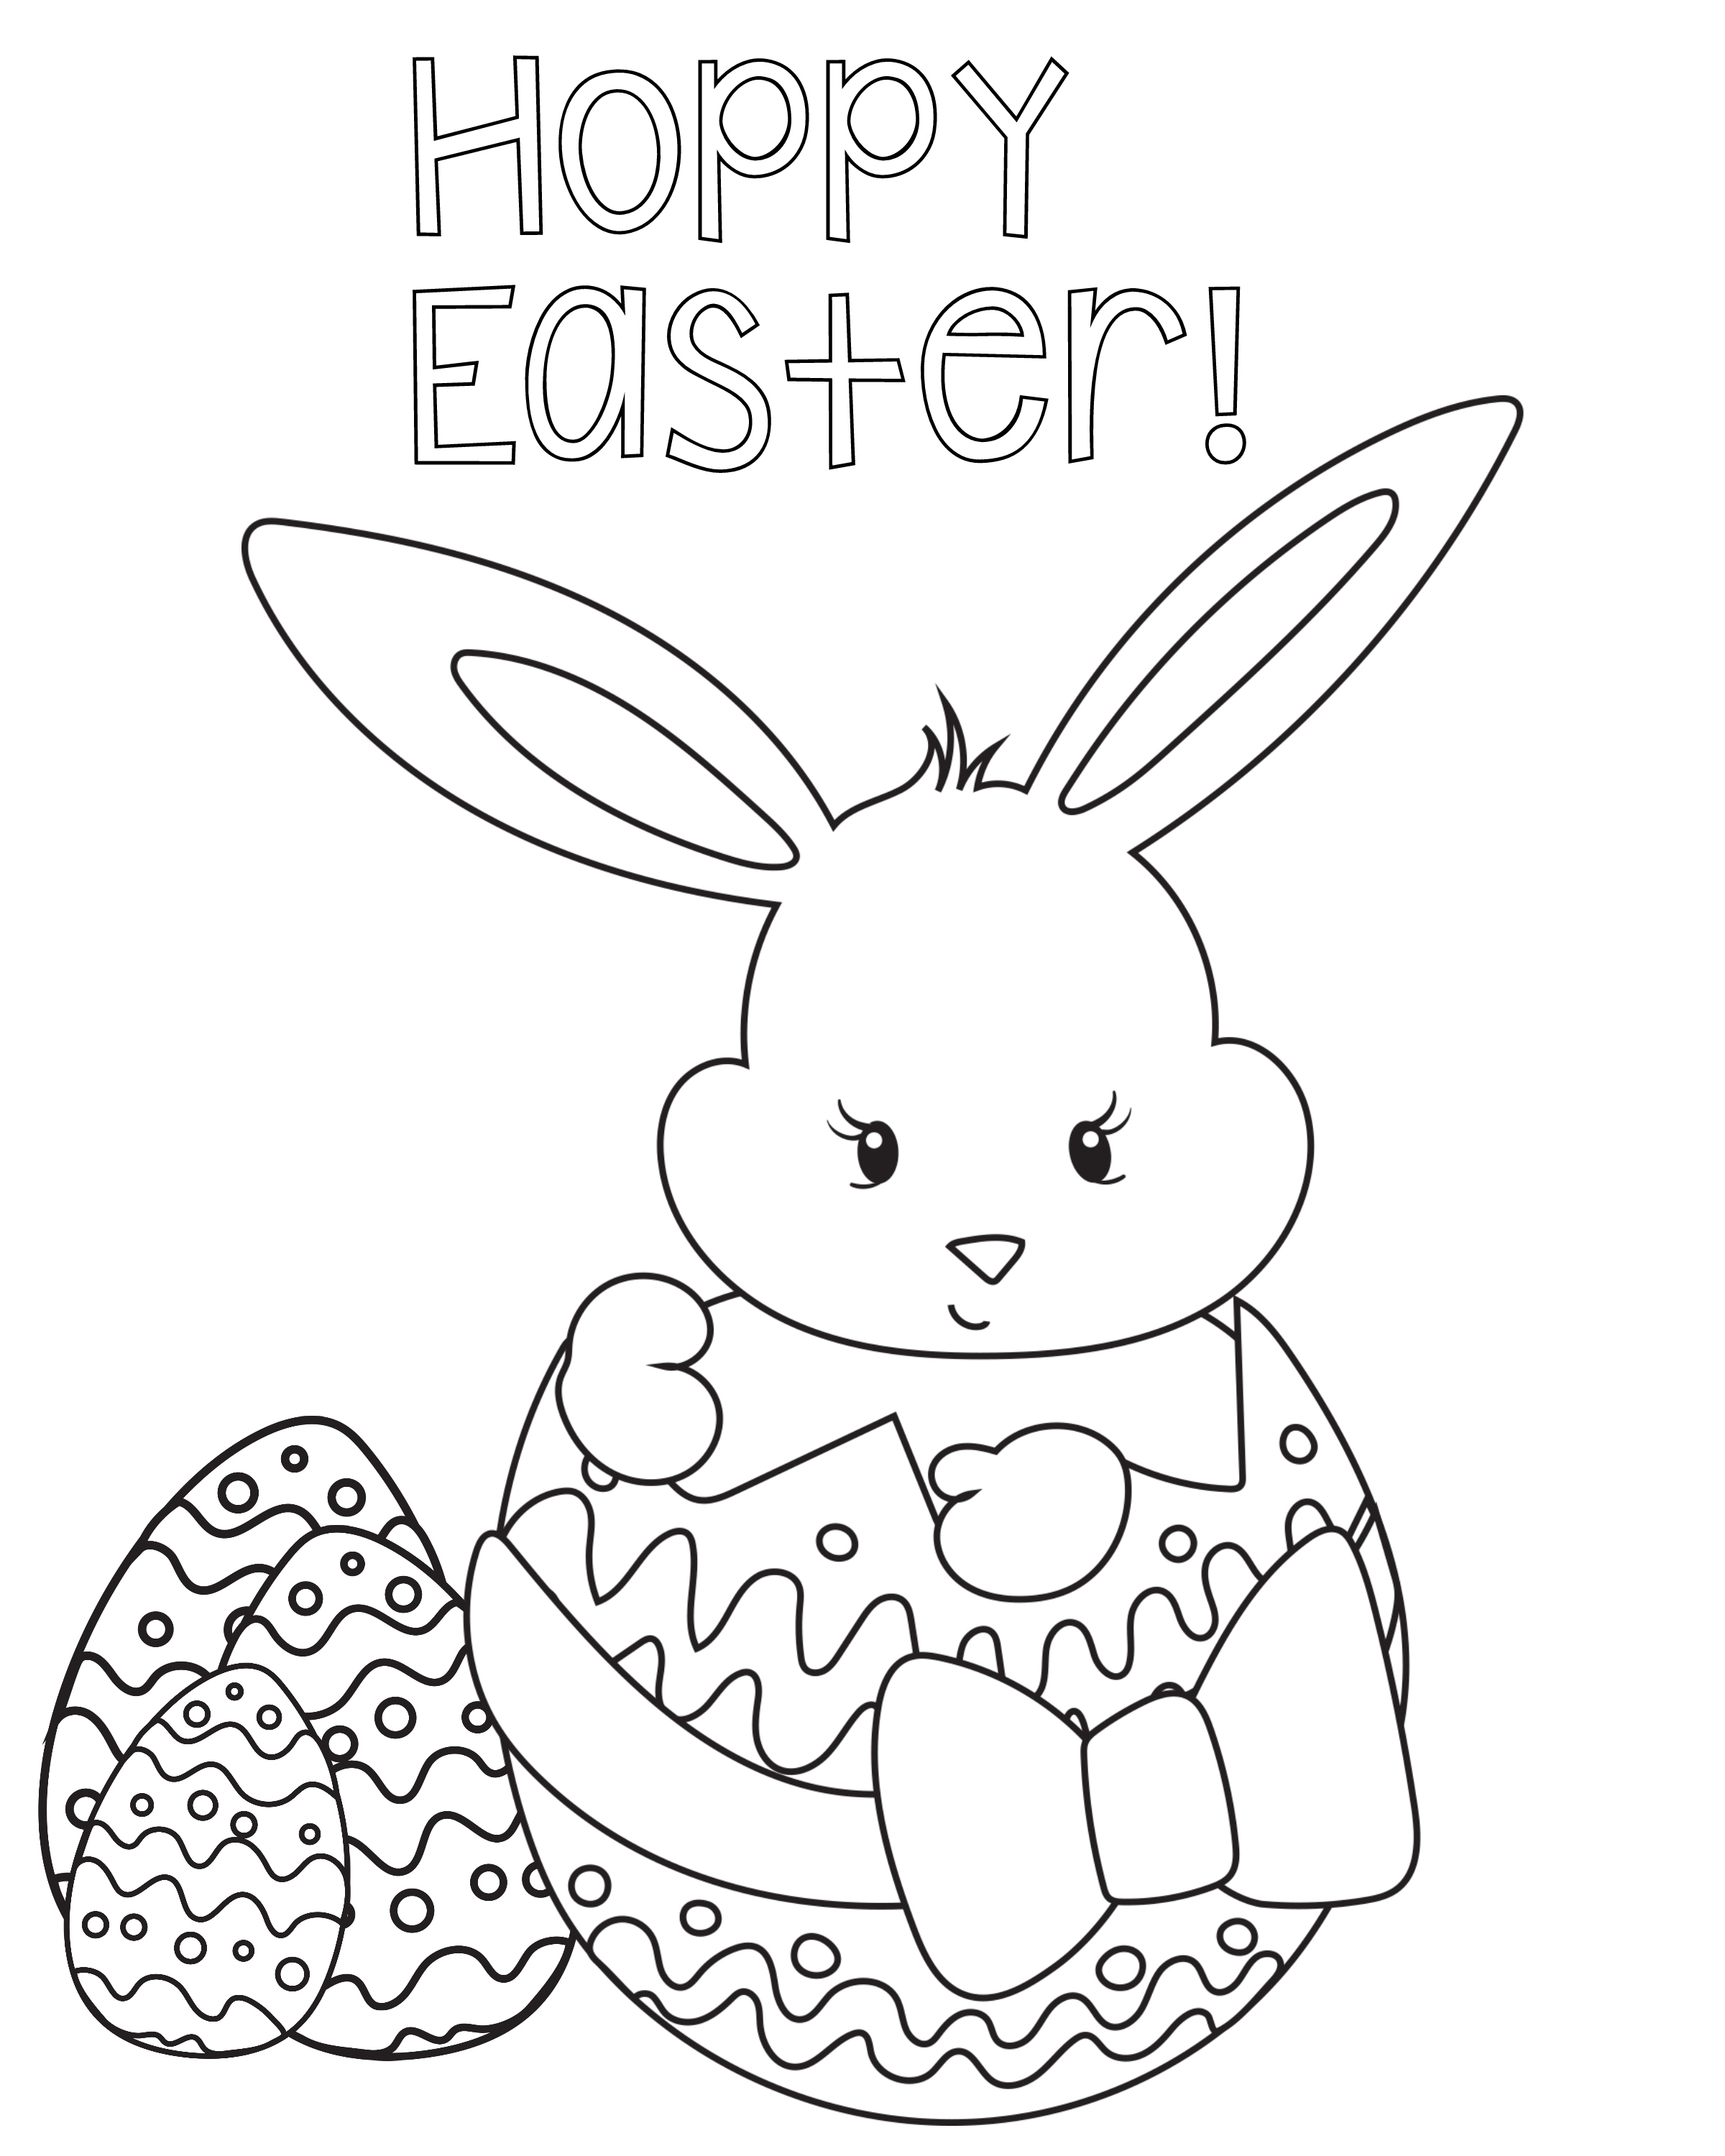 Delighted Bunny Print Out Coloring Pages Easter for Kids Crazy Printable Of Easter Coloring14 Gallery